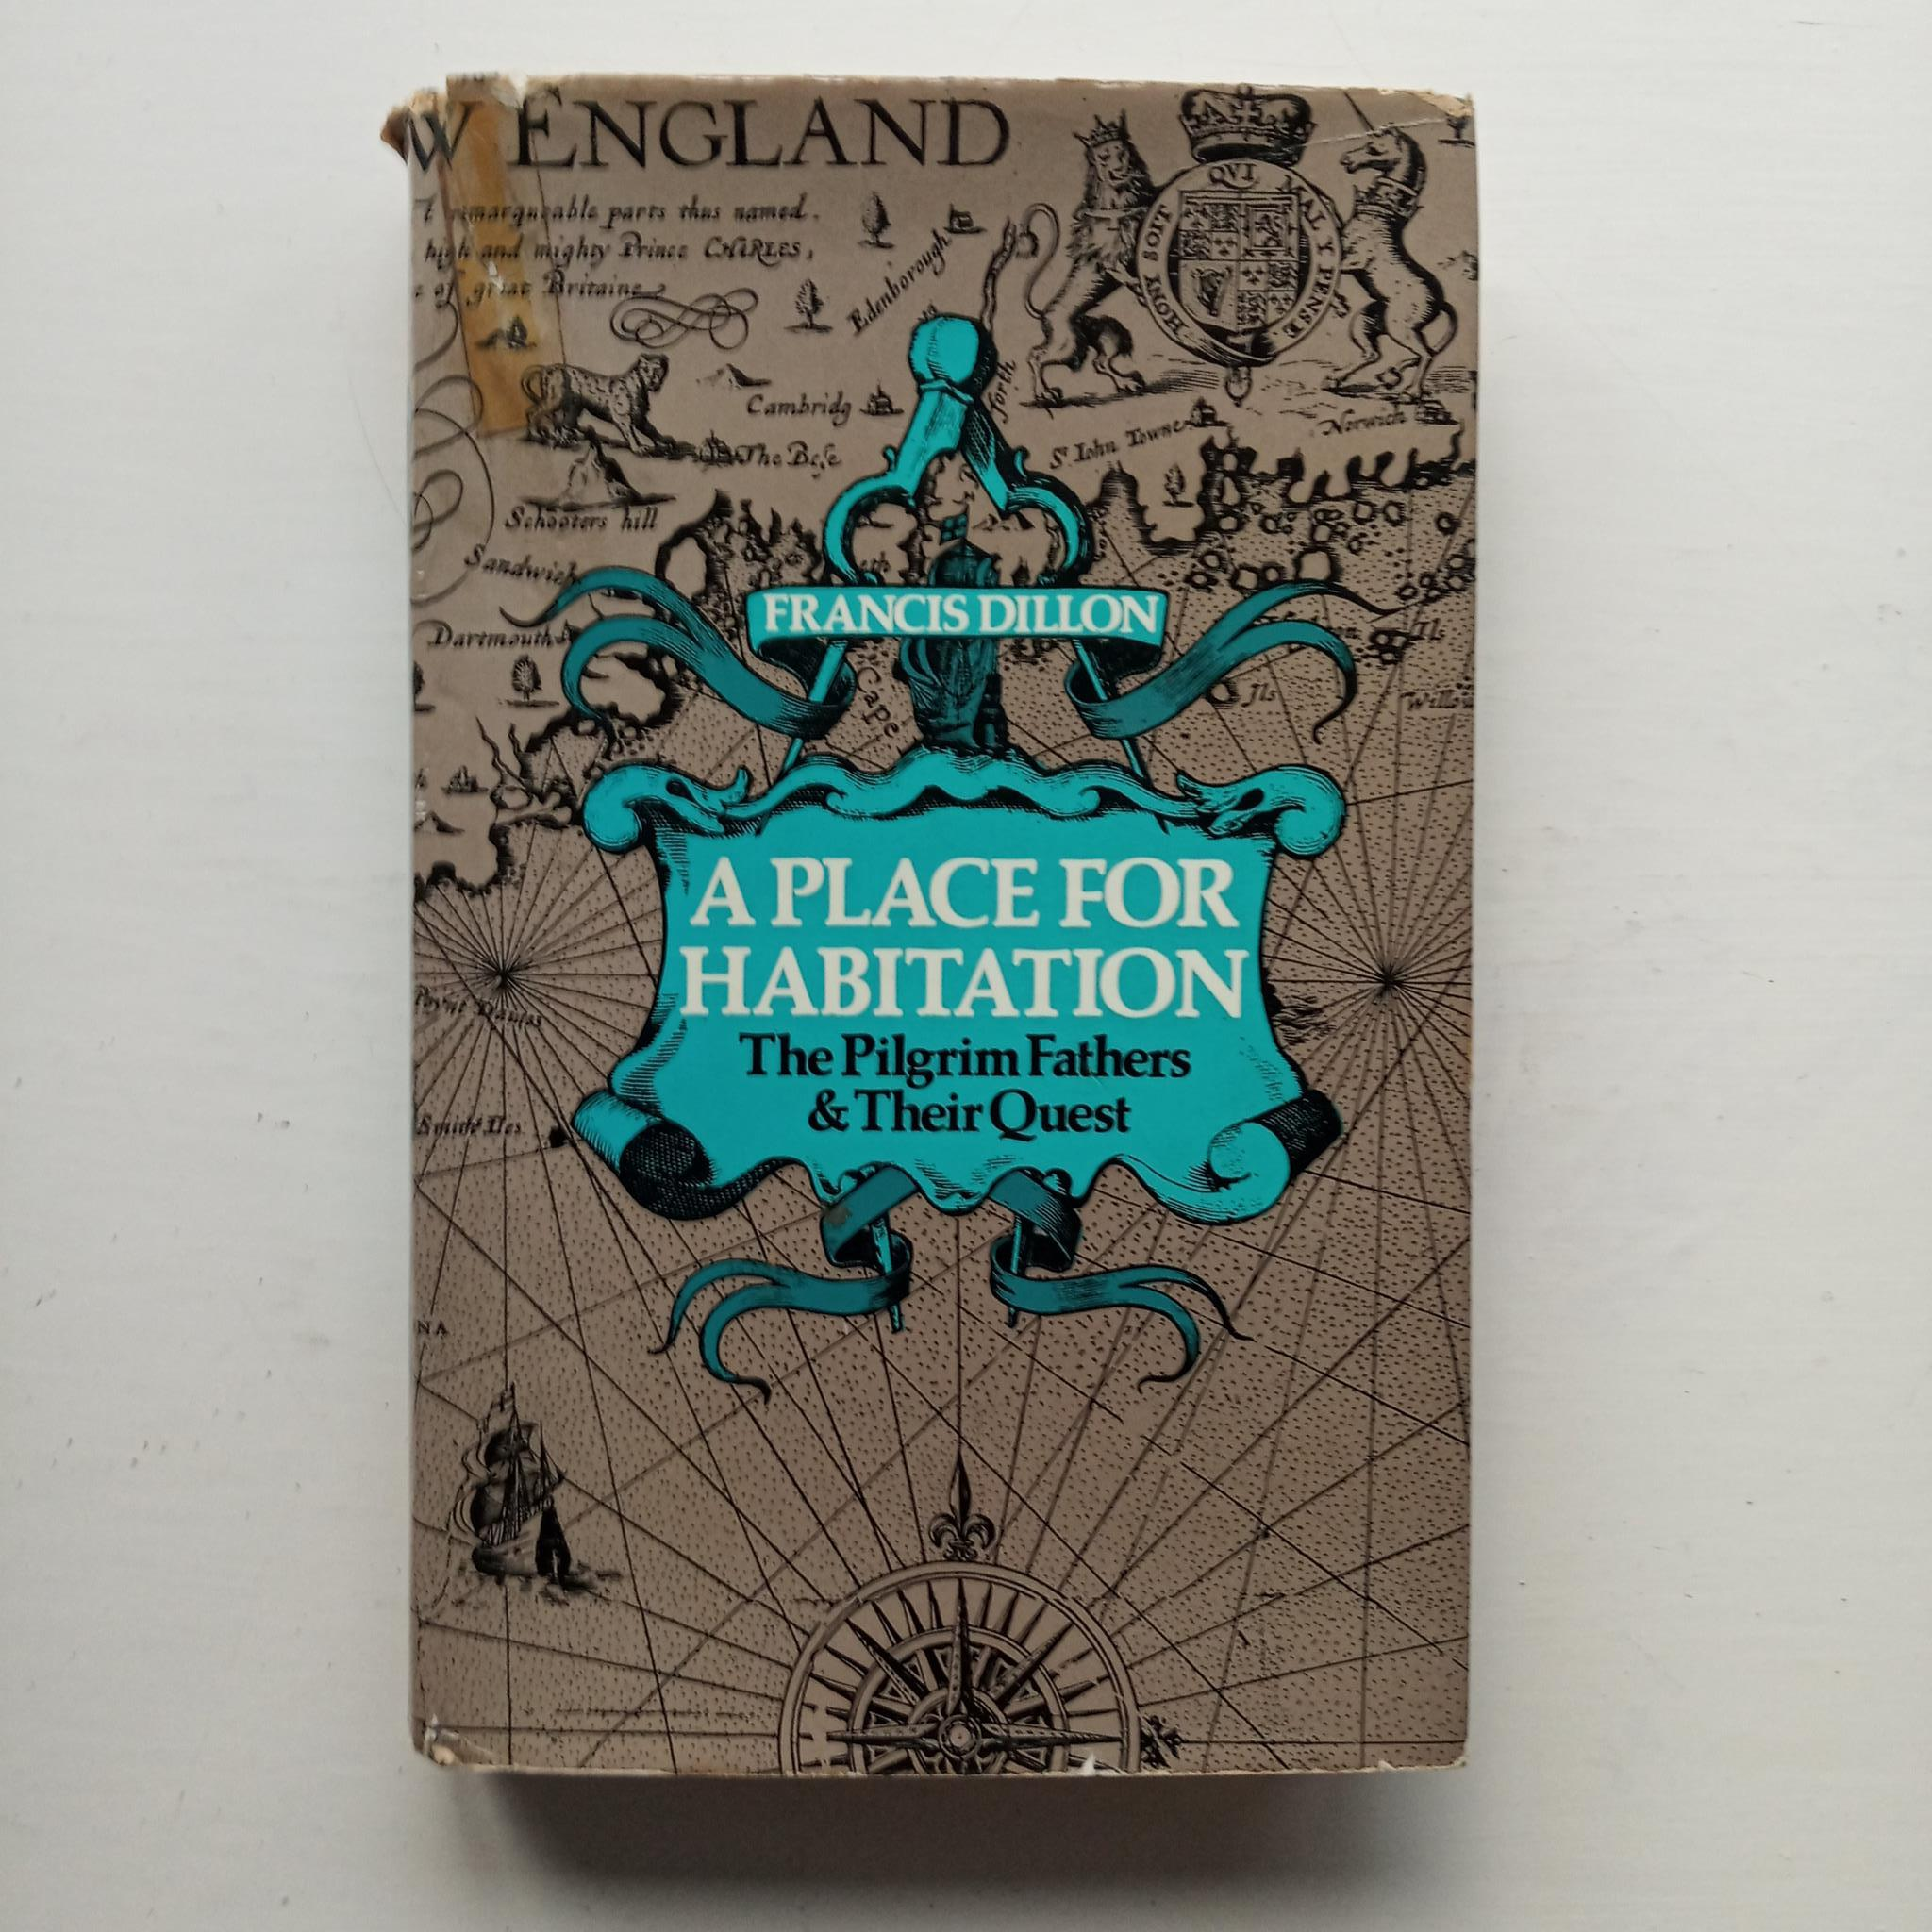 A Place for Habitation by Francis Dillon